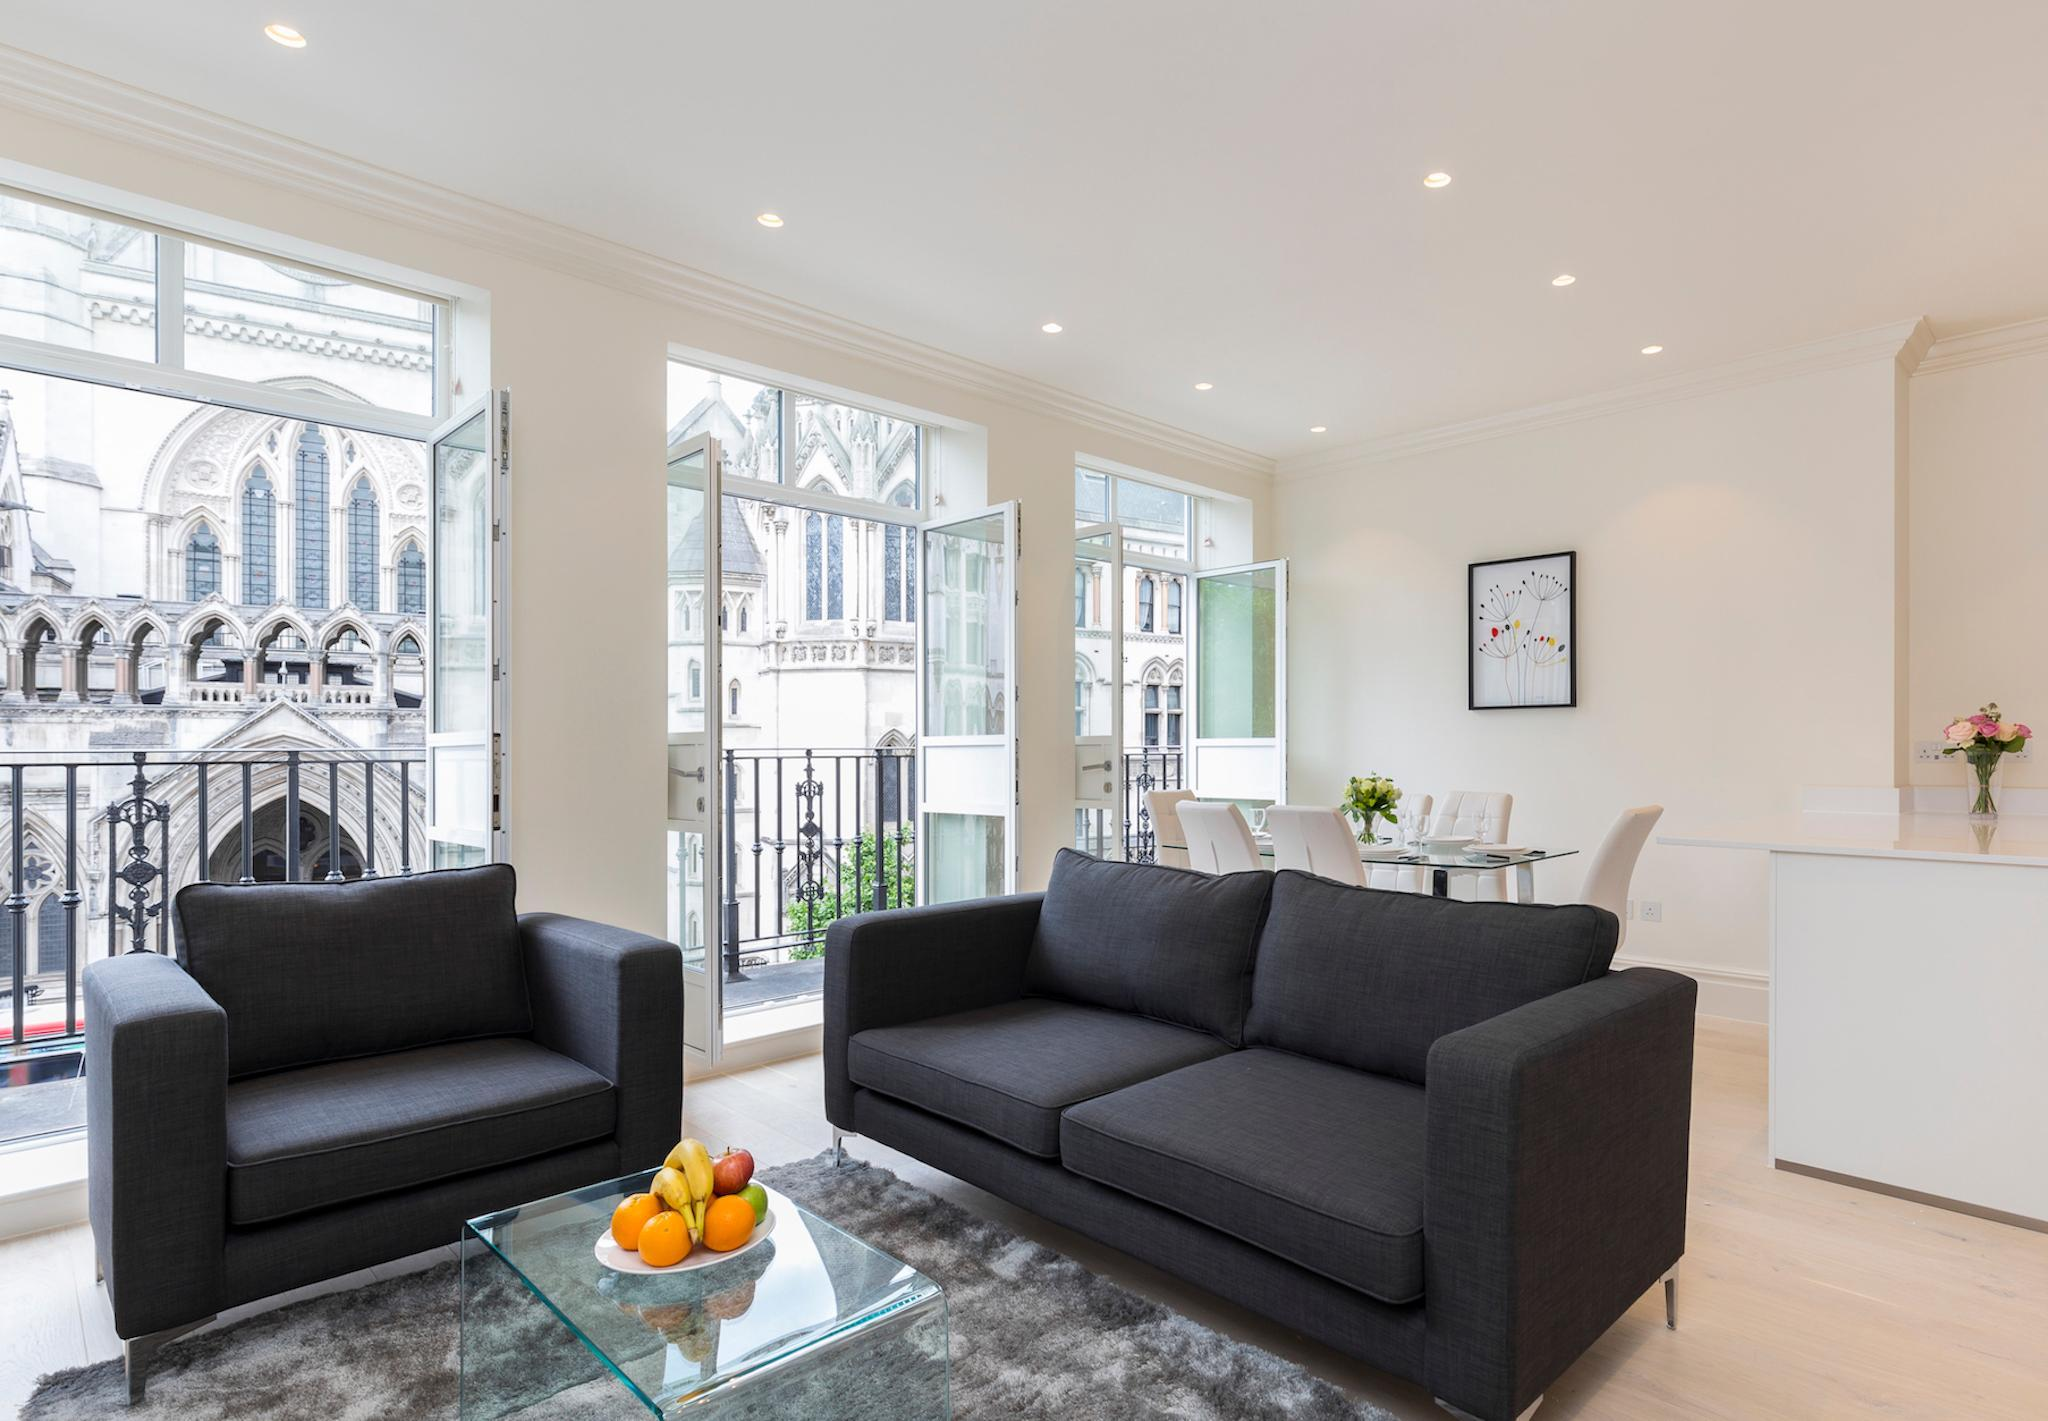 COVENT GARDEN 3BR WITH BALCONY -AMAZING CITY VIEW!